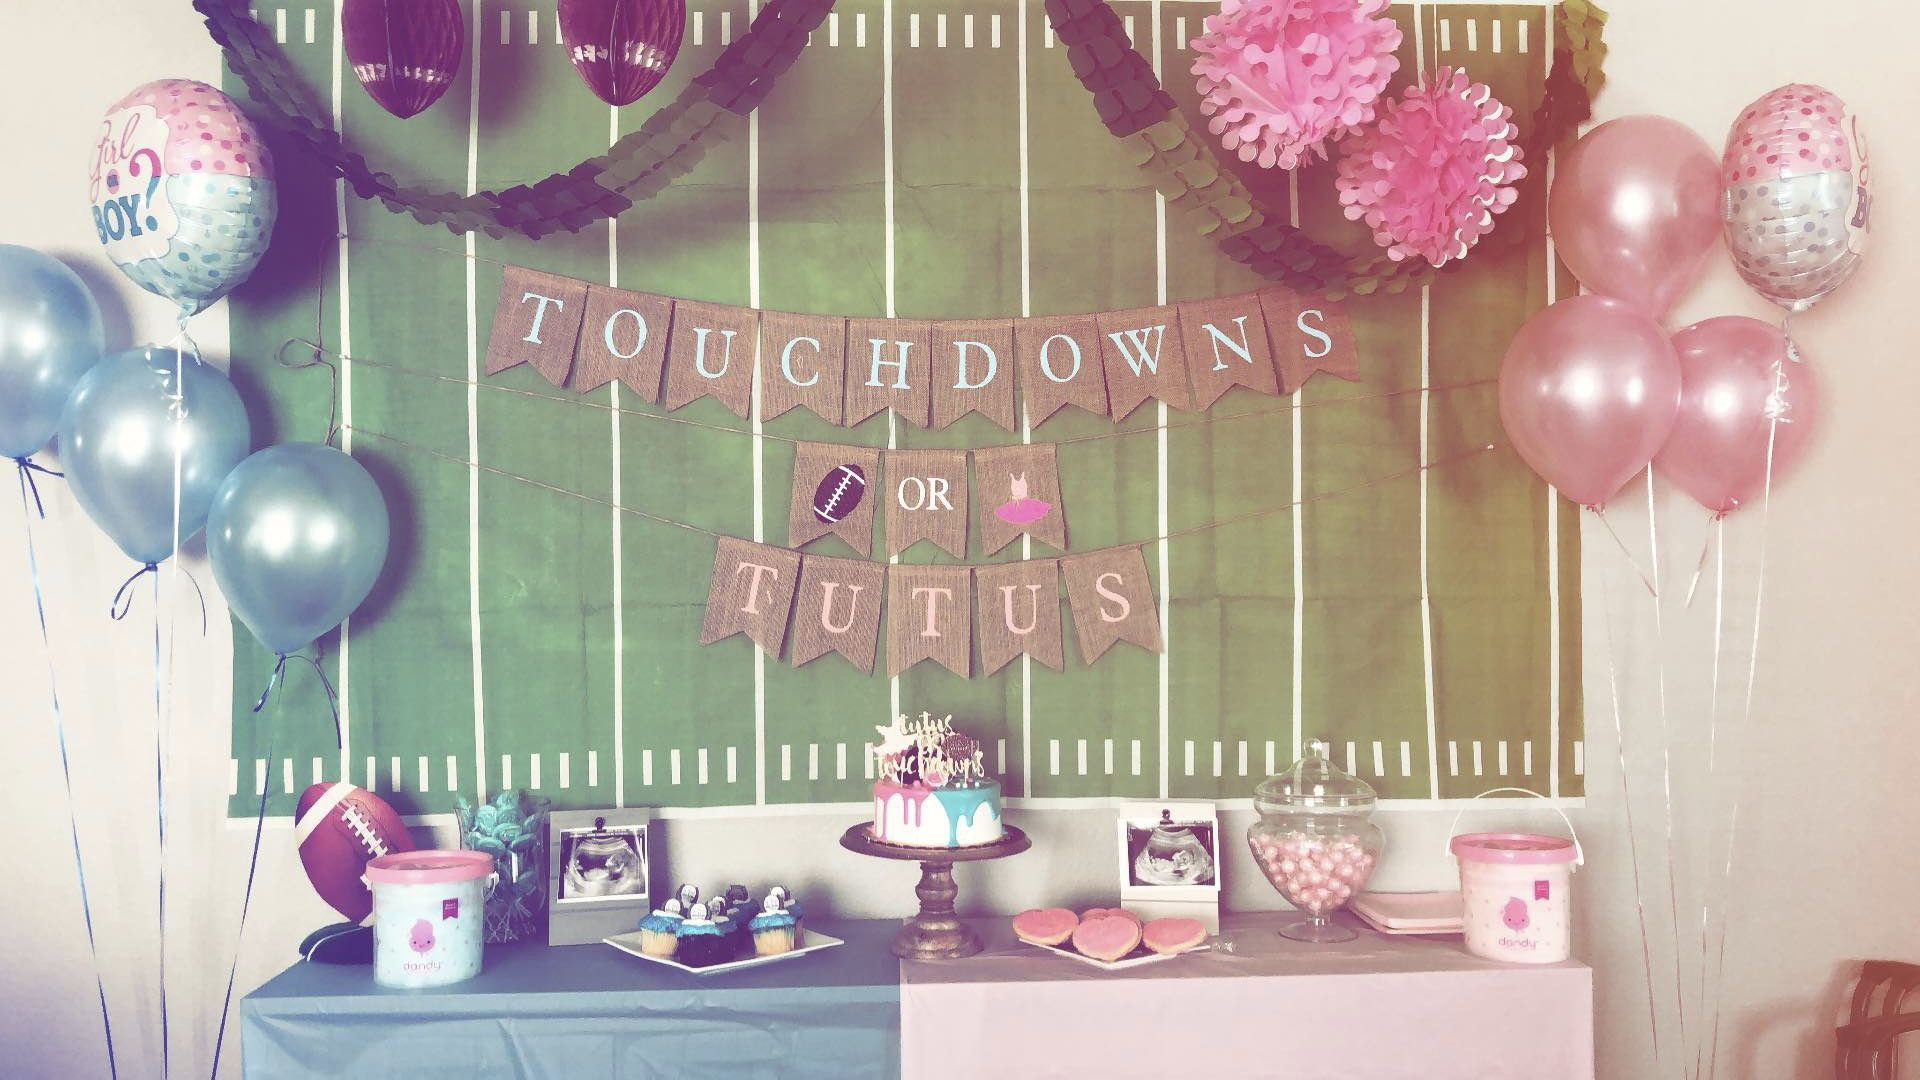 Touchdowns Or Tutus Gender Reveal Party Theme Gender Reveal Party Favors Gender Reveal Party Decorations